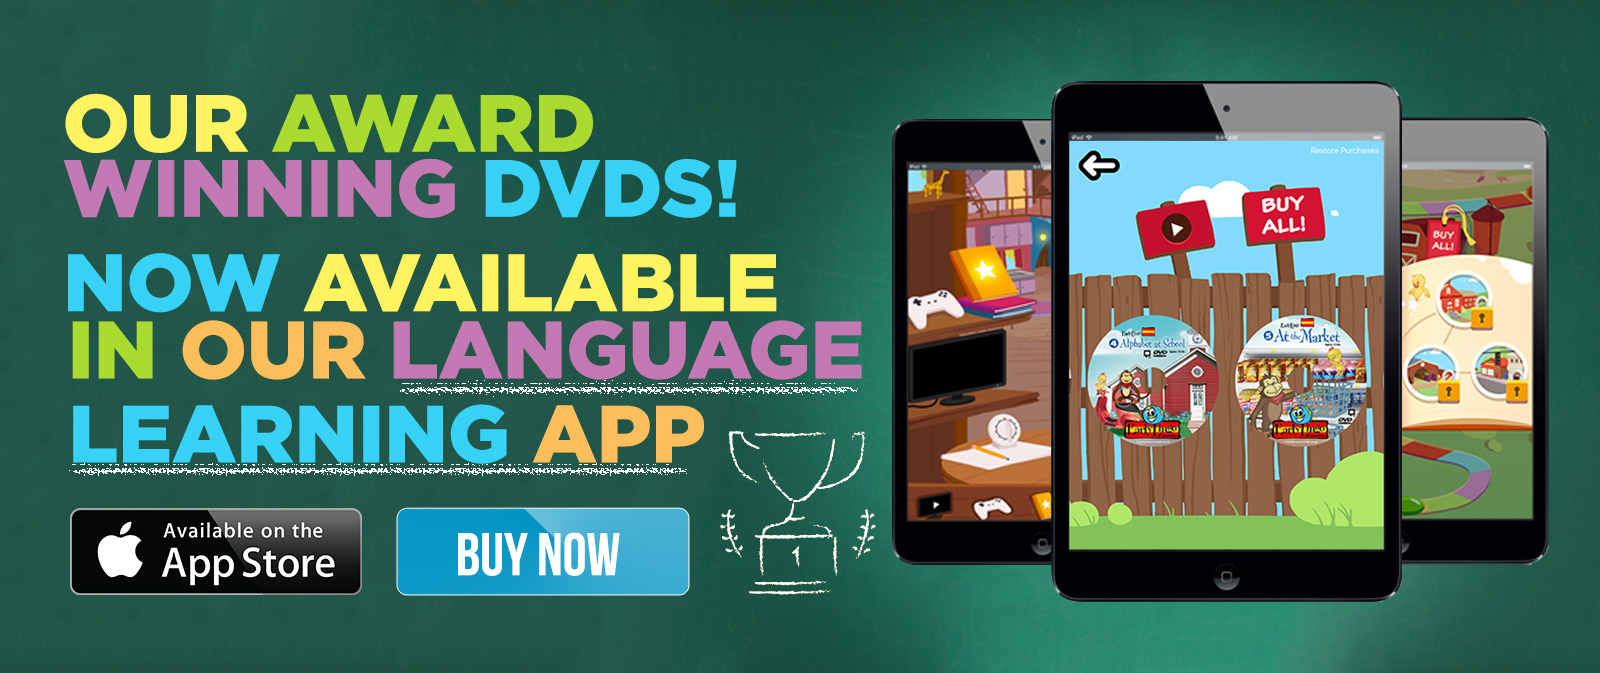 Buy Language Learning App Now - Early Lingo